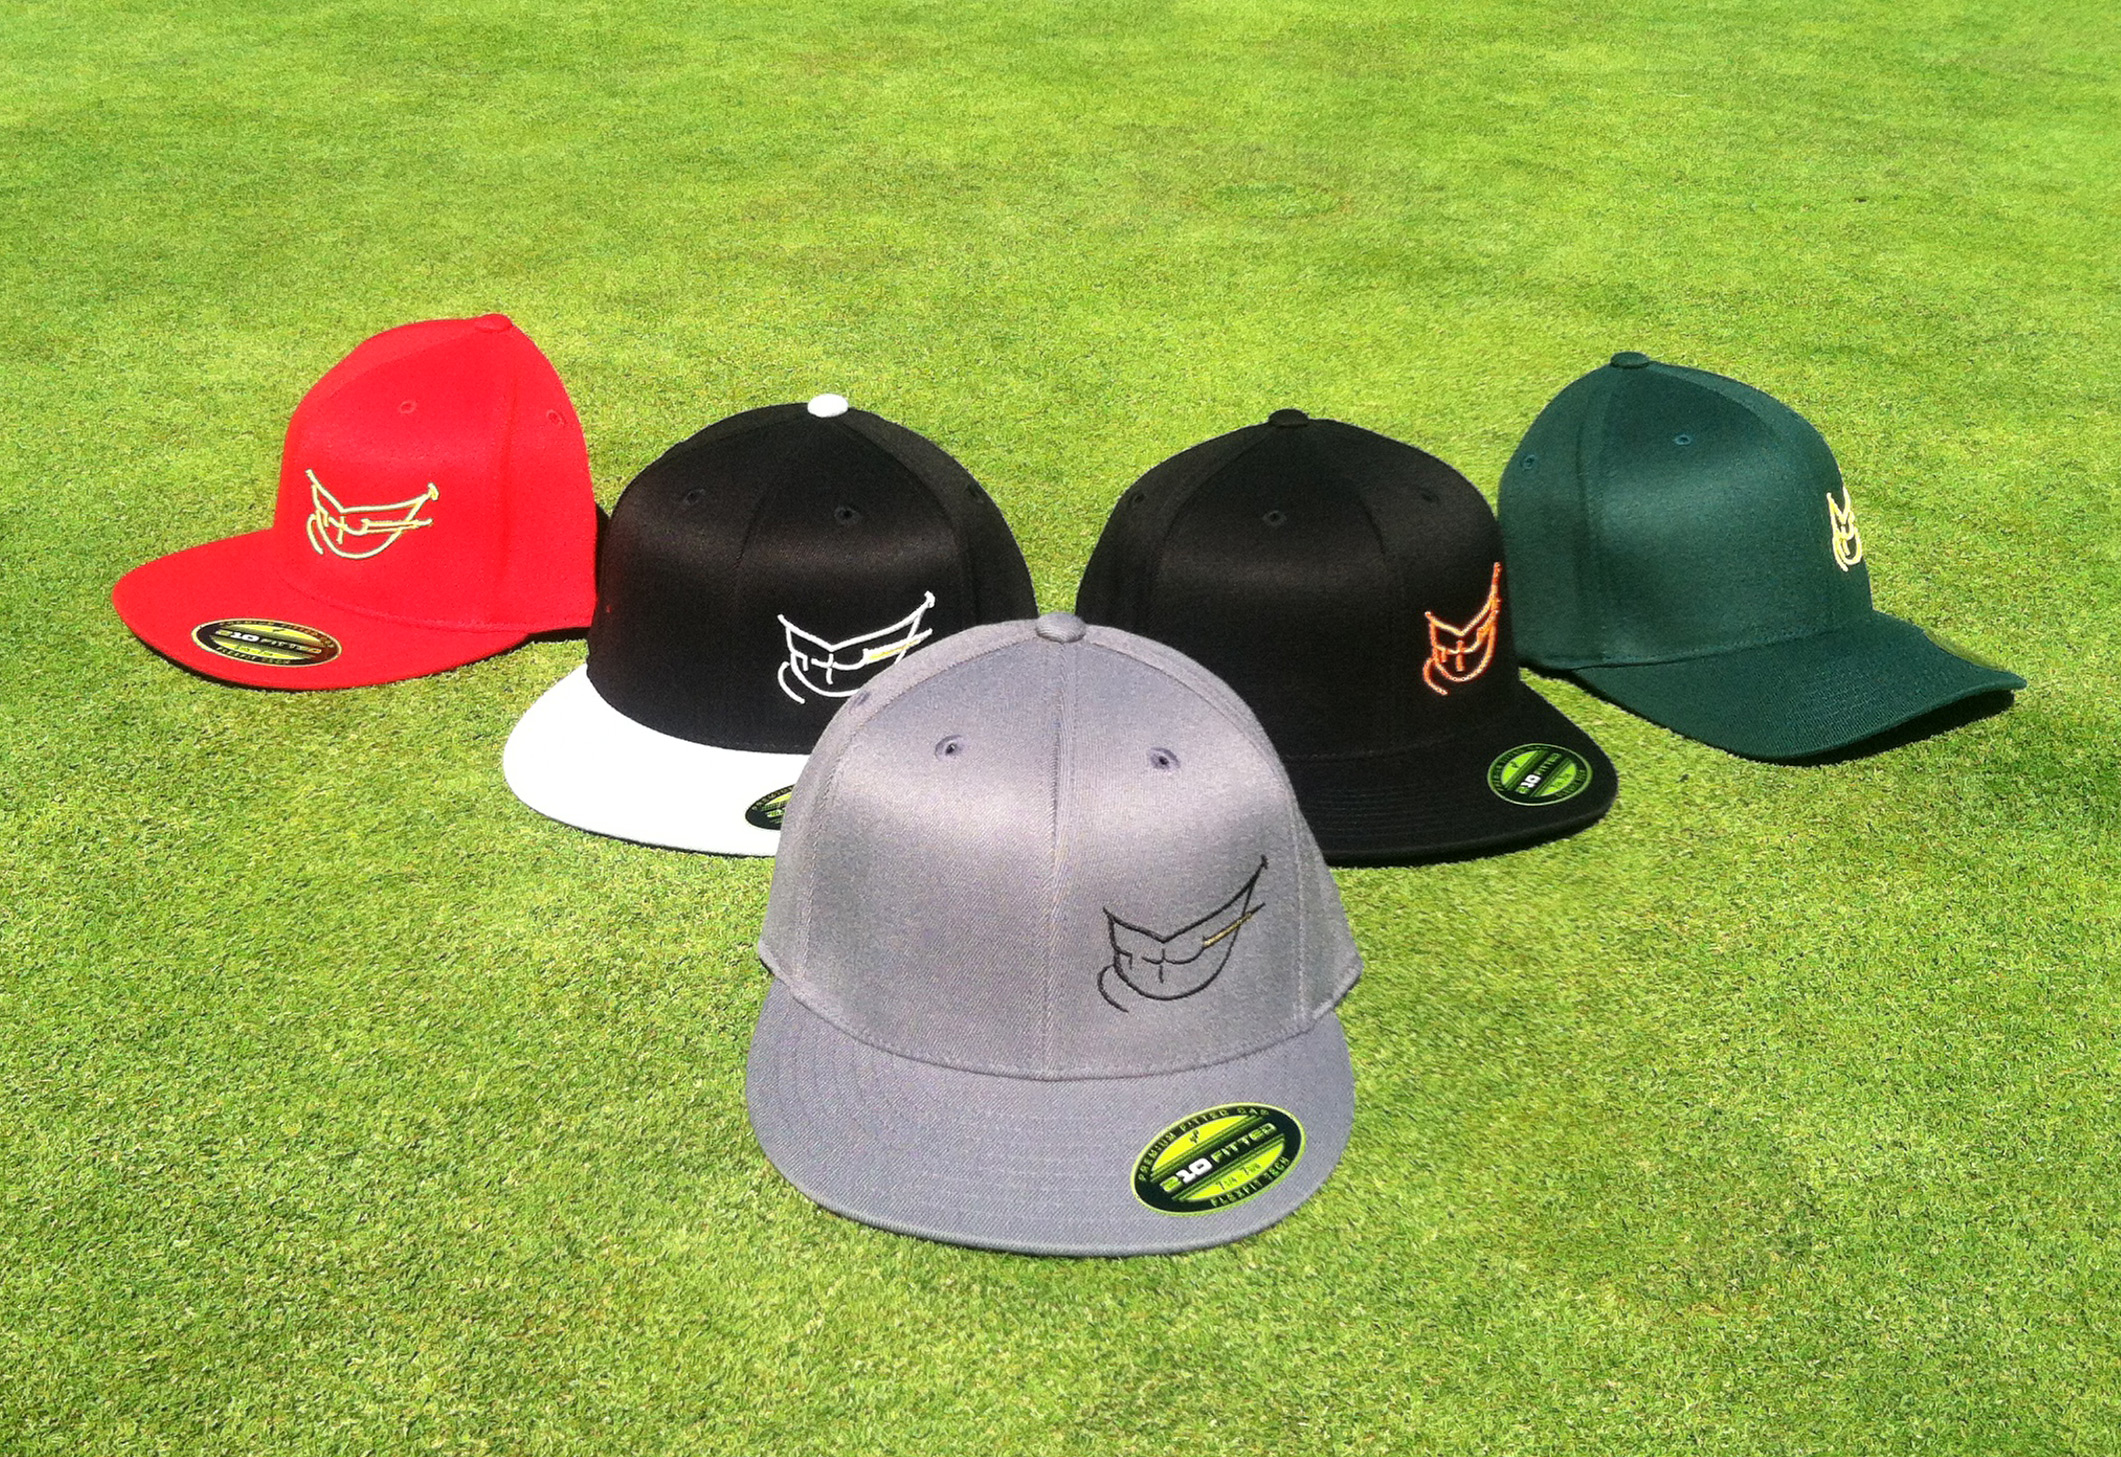 iPick Football - hats